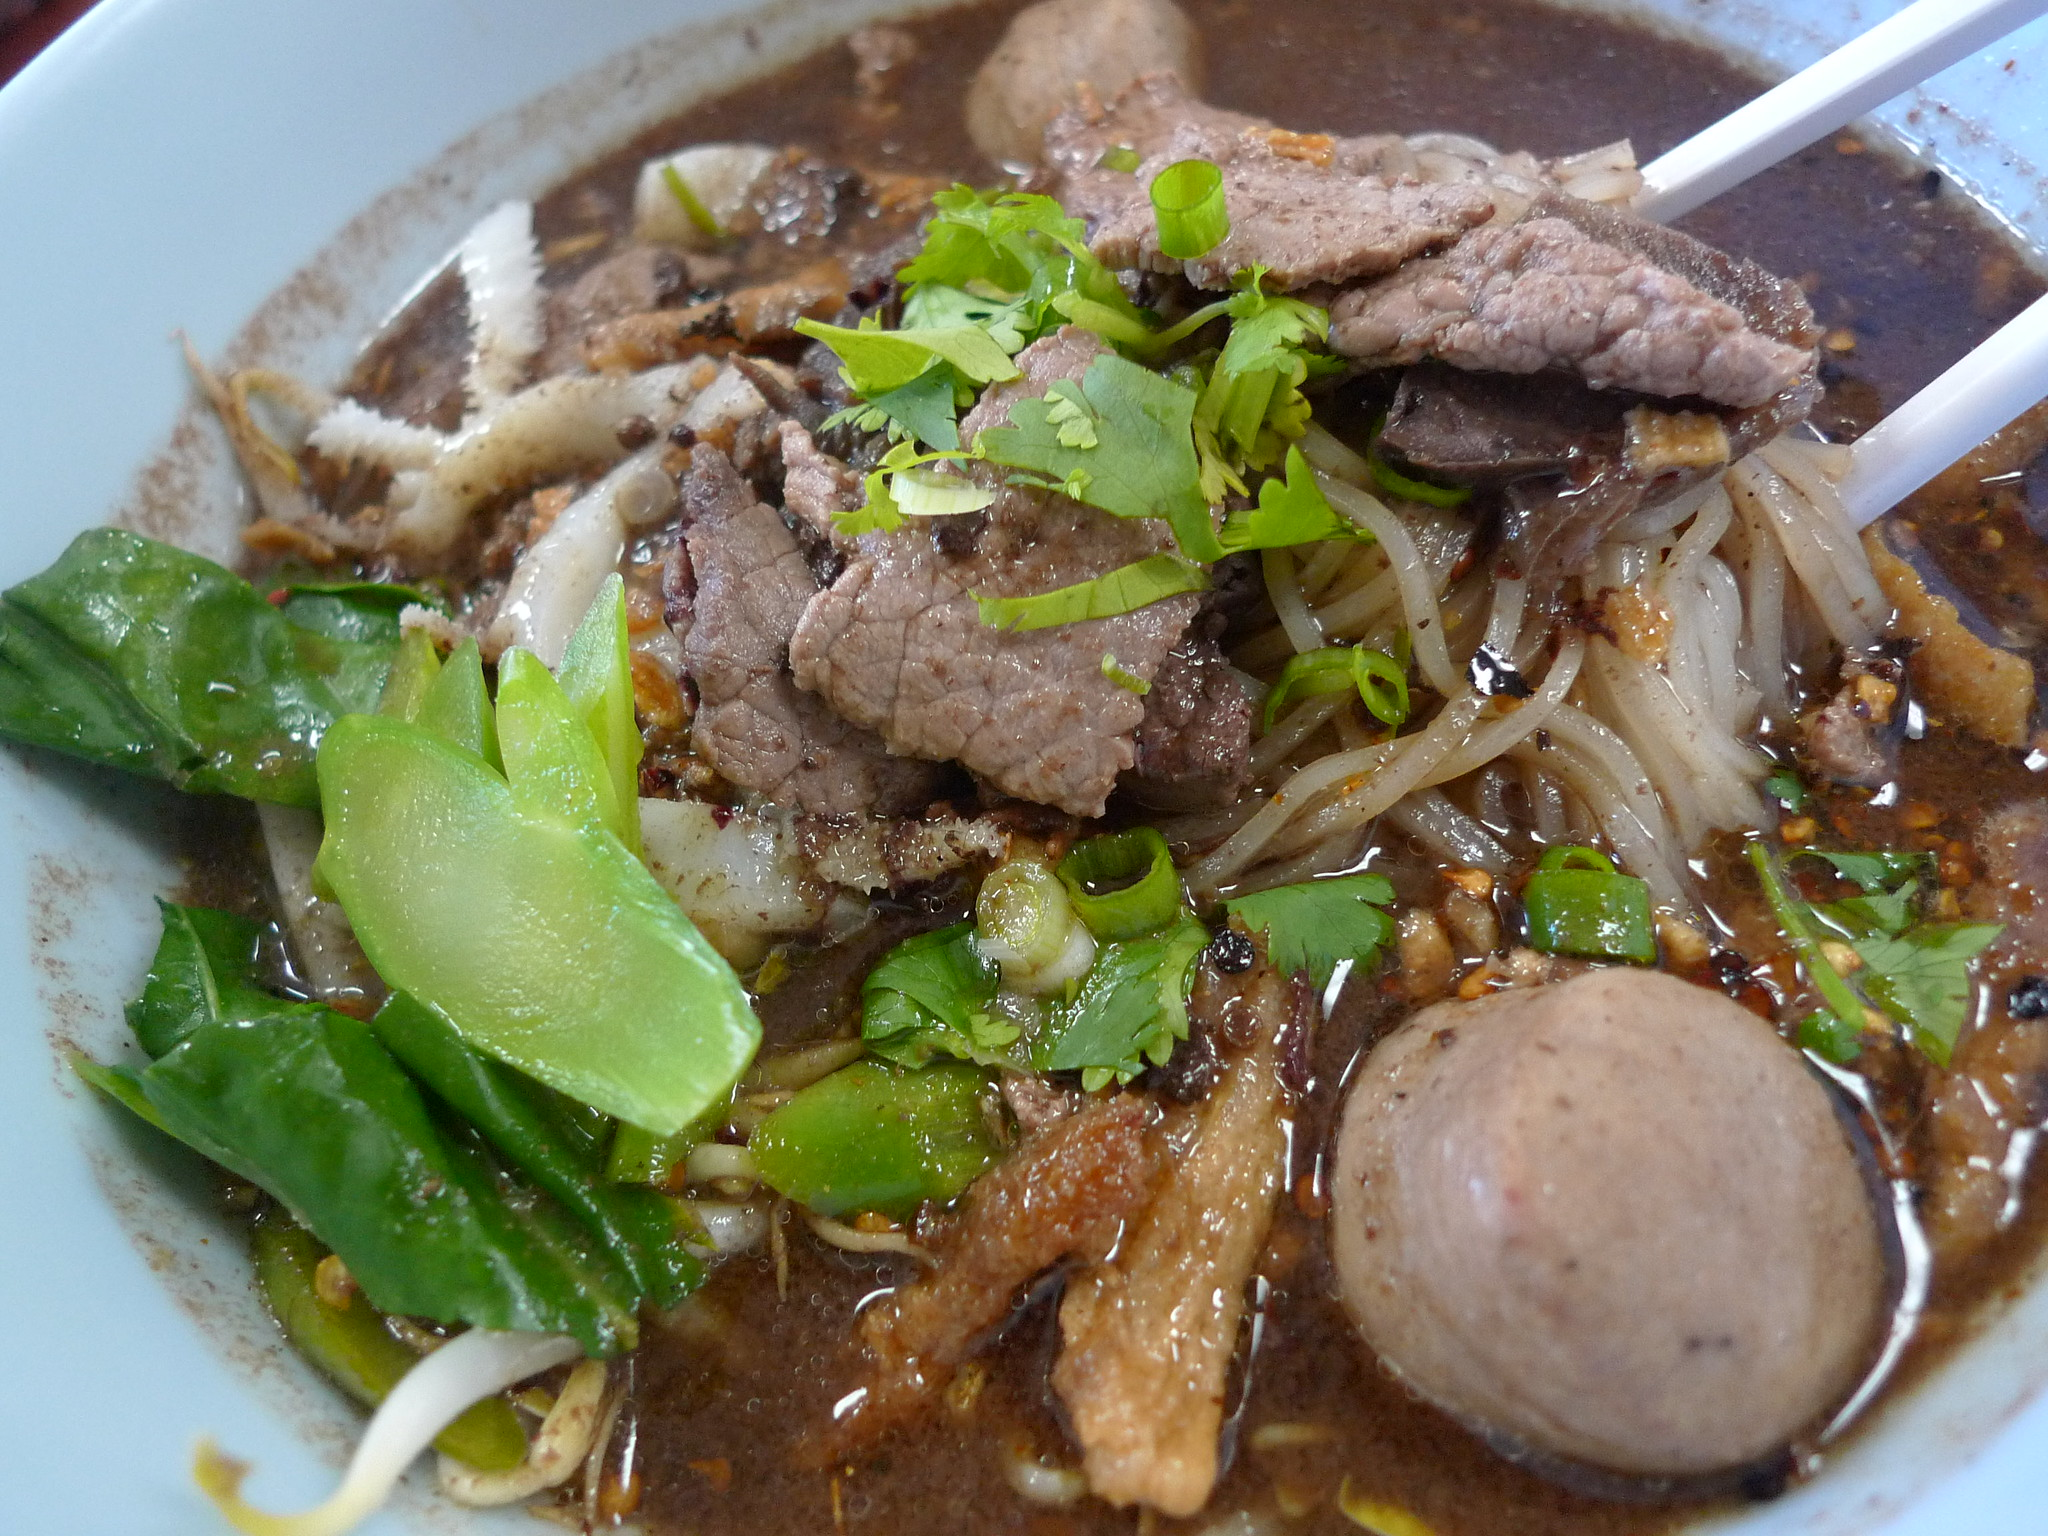 No Reservations Los Angeles - Boat Noodles - photo by Ron Dollete under CC BY-ND 2.0